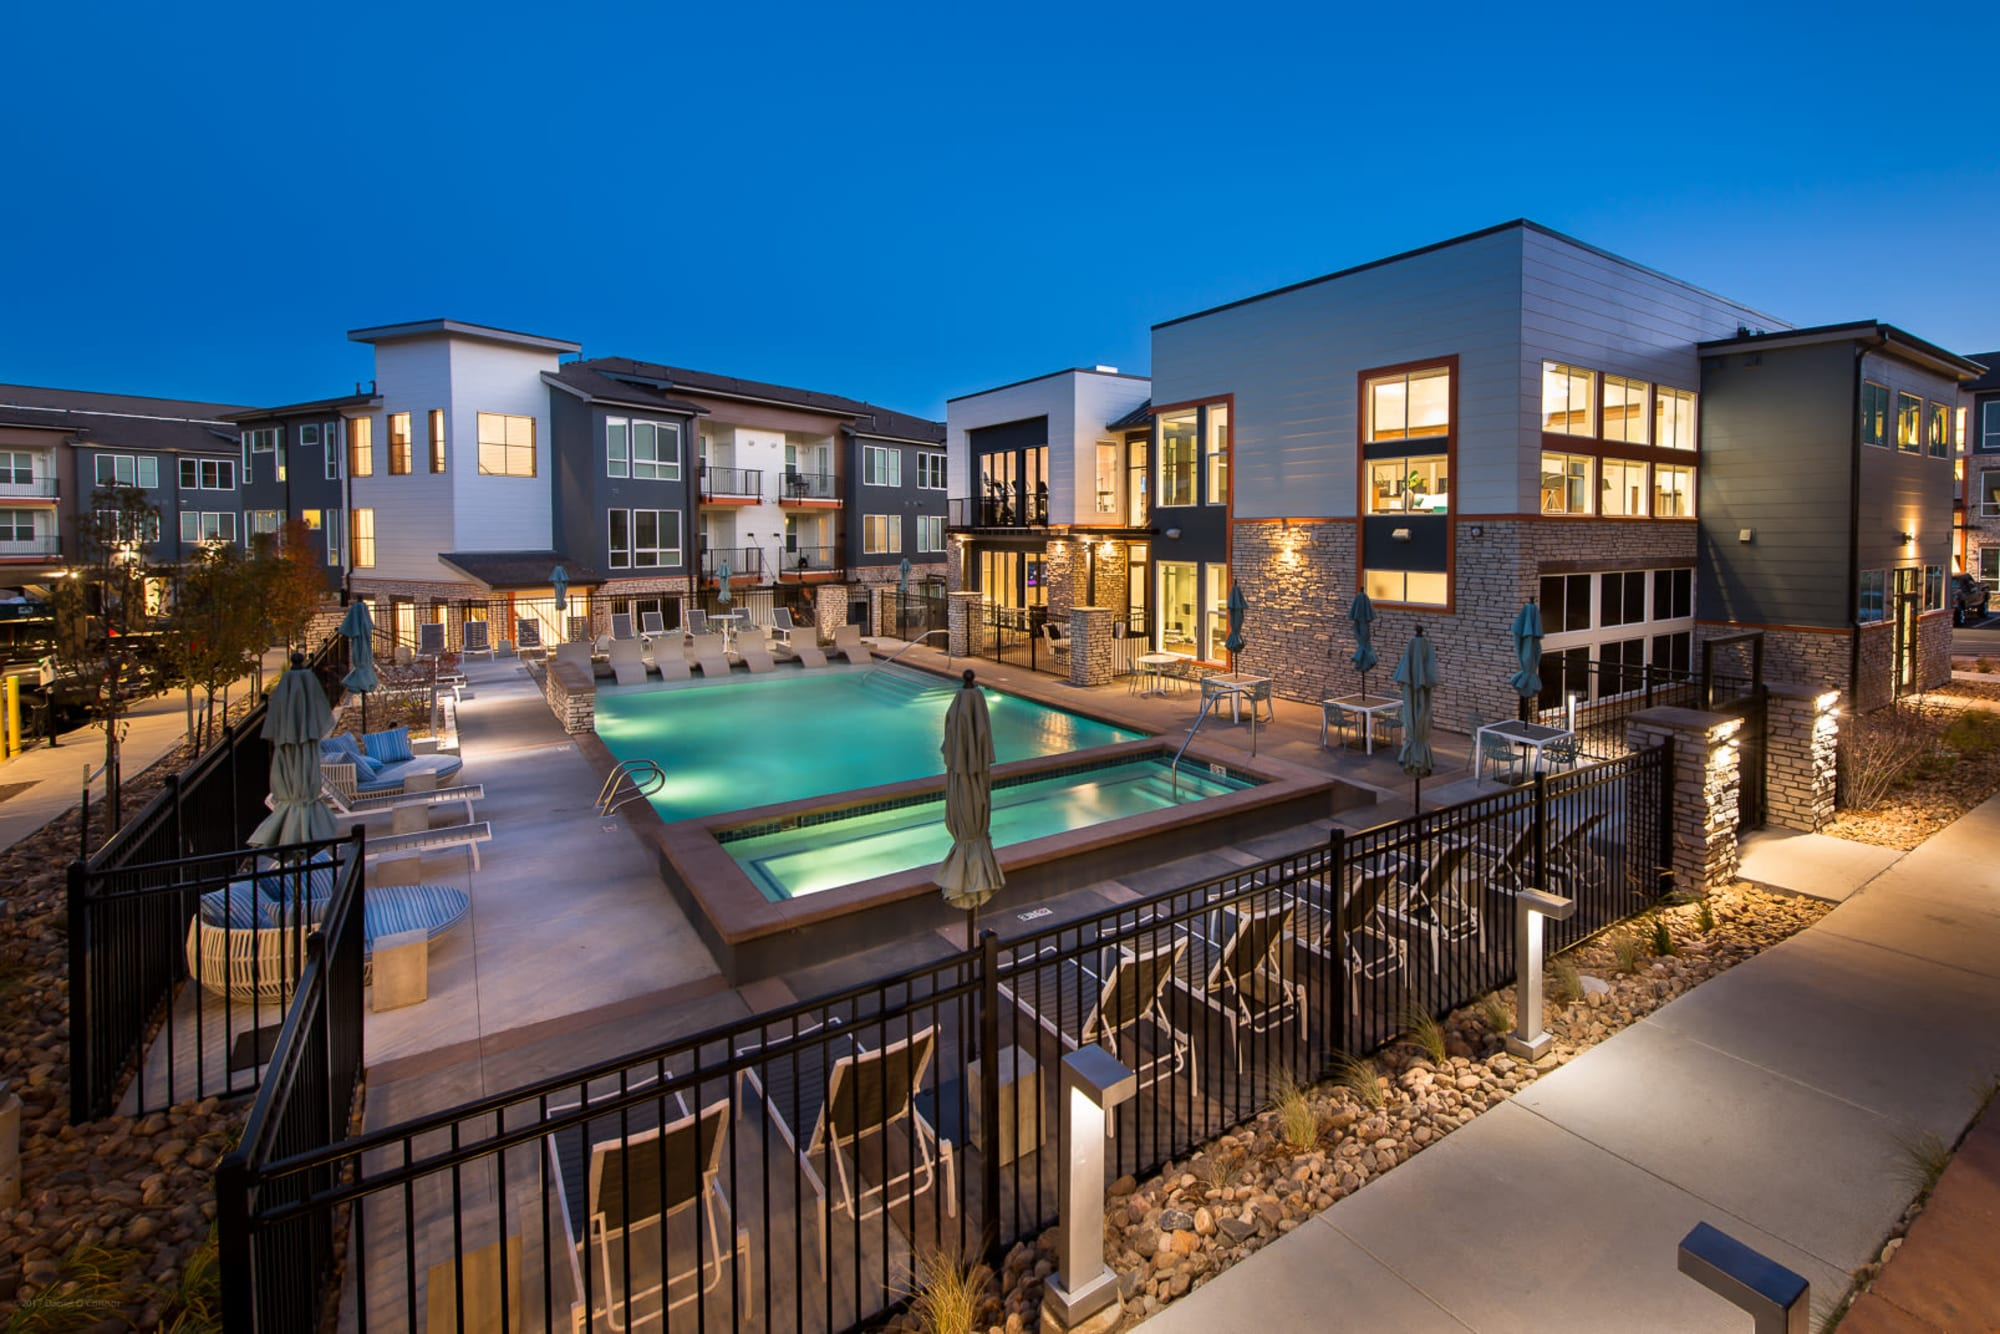 The pool at Elevate on a warm summer evening.